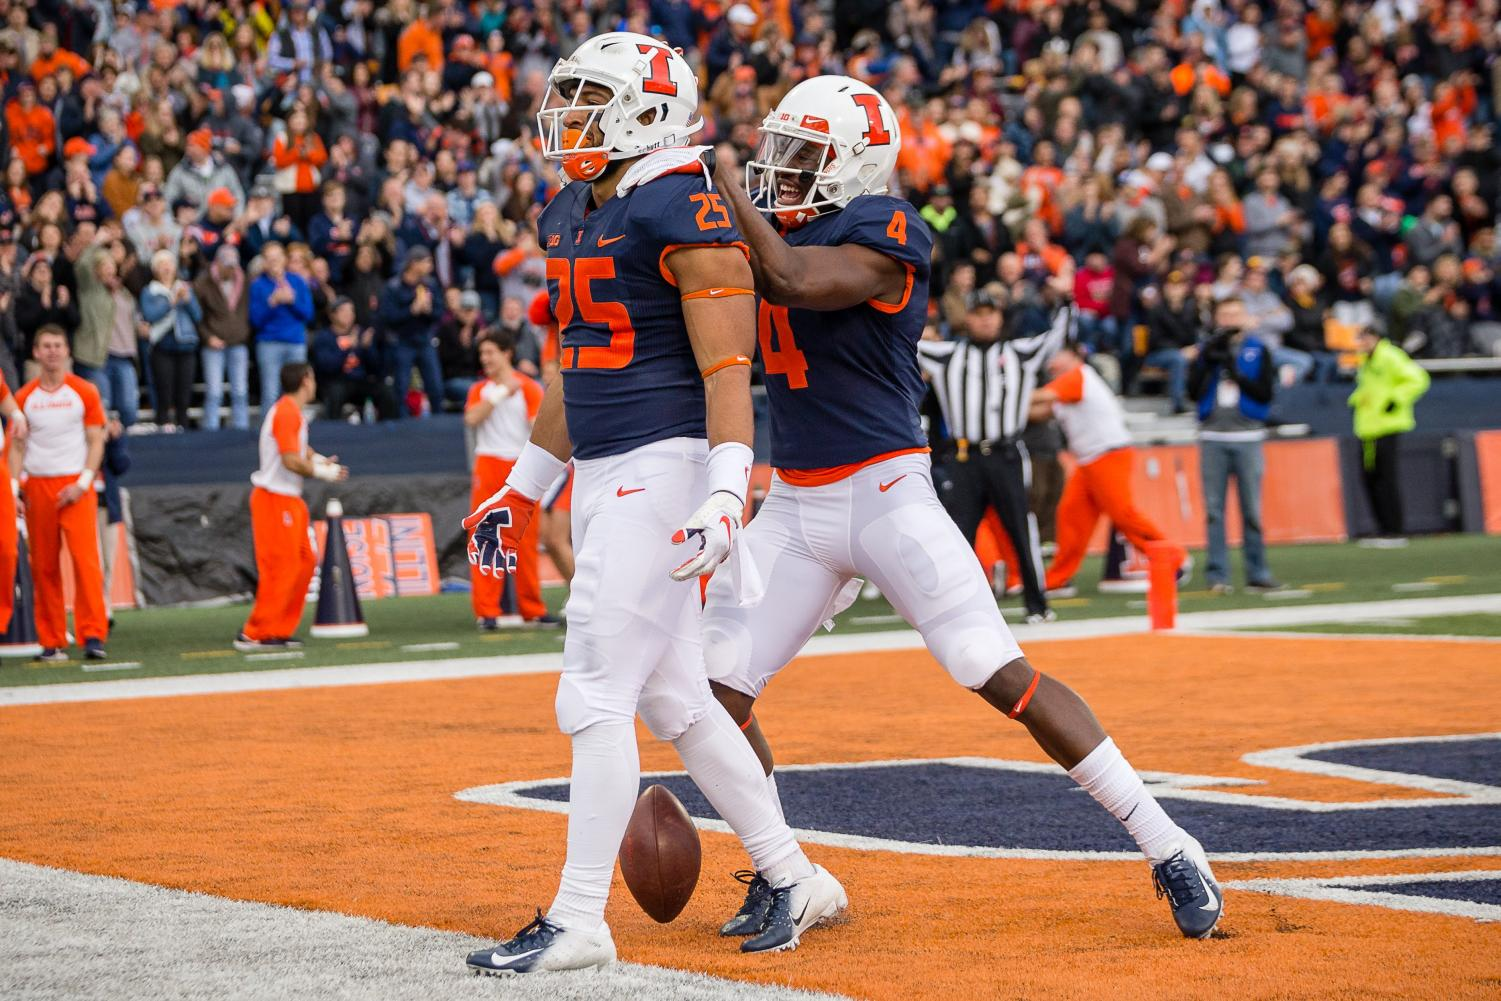 Illinois running back Dre Brown (left) celebrates with wide receiver Ricky Smalling (right) after scoring a touchdown during the game against Minnesota at Memorial Stadium on Saturday. The Illini won 55-31. Brown ran for a career-high 92 yards on the day and scored his first collegiate touchdown.